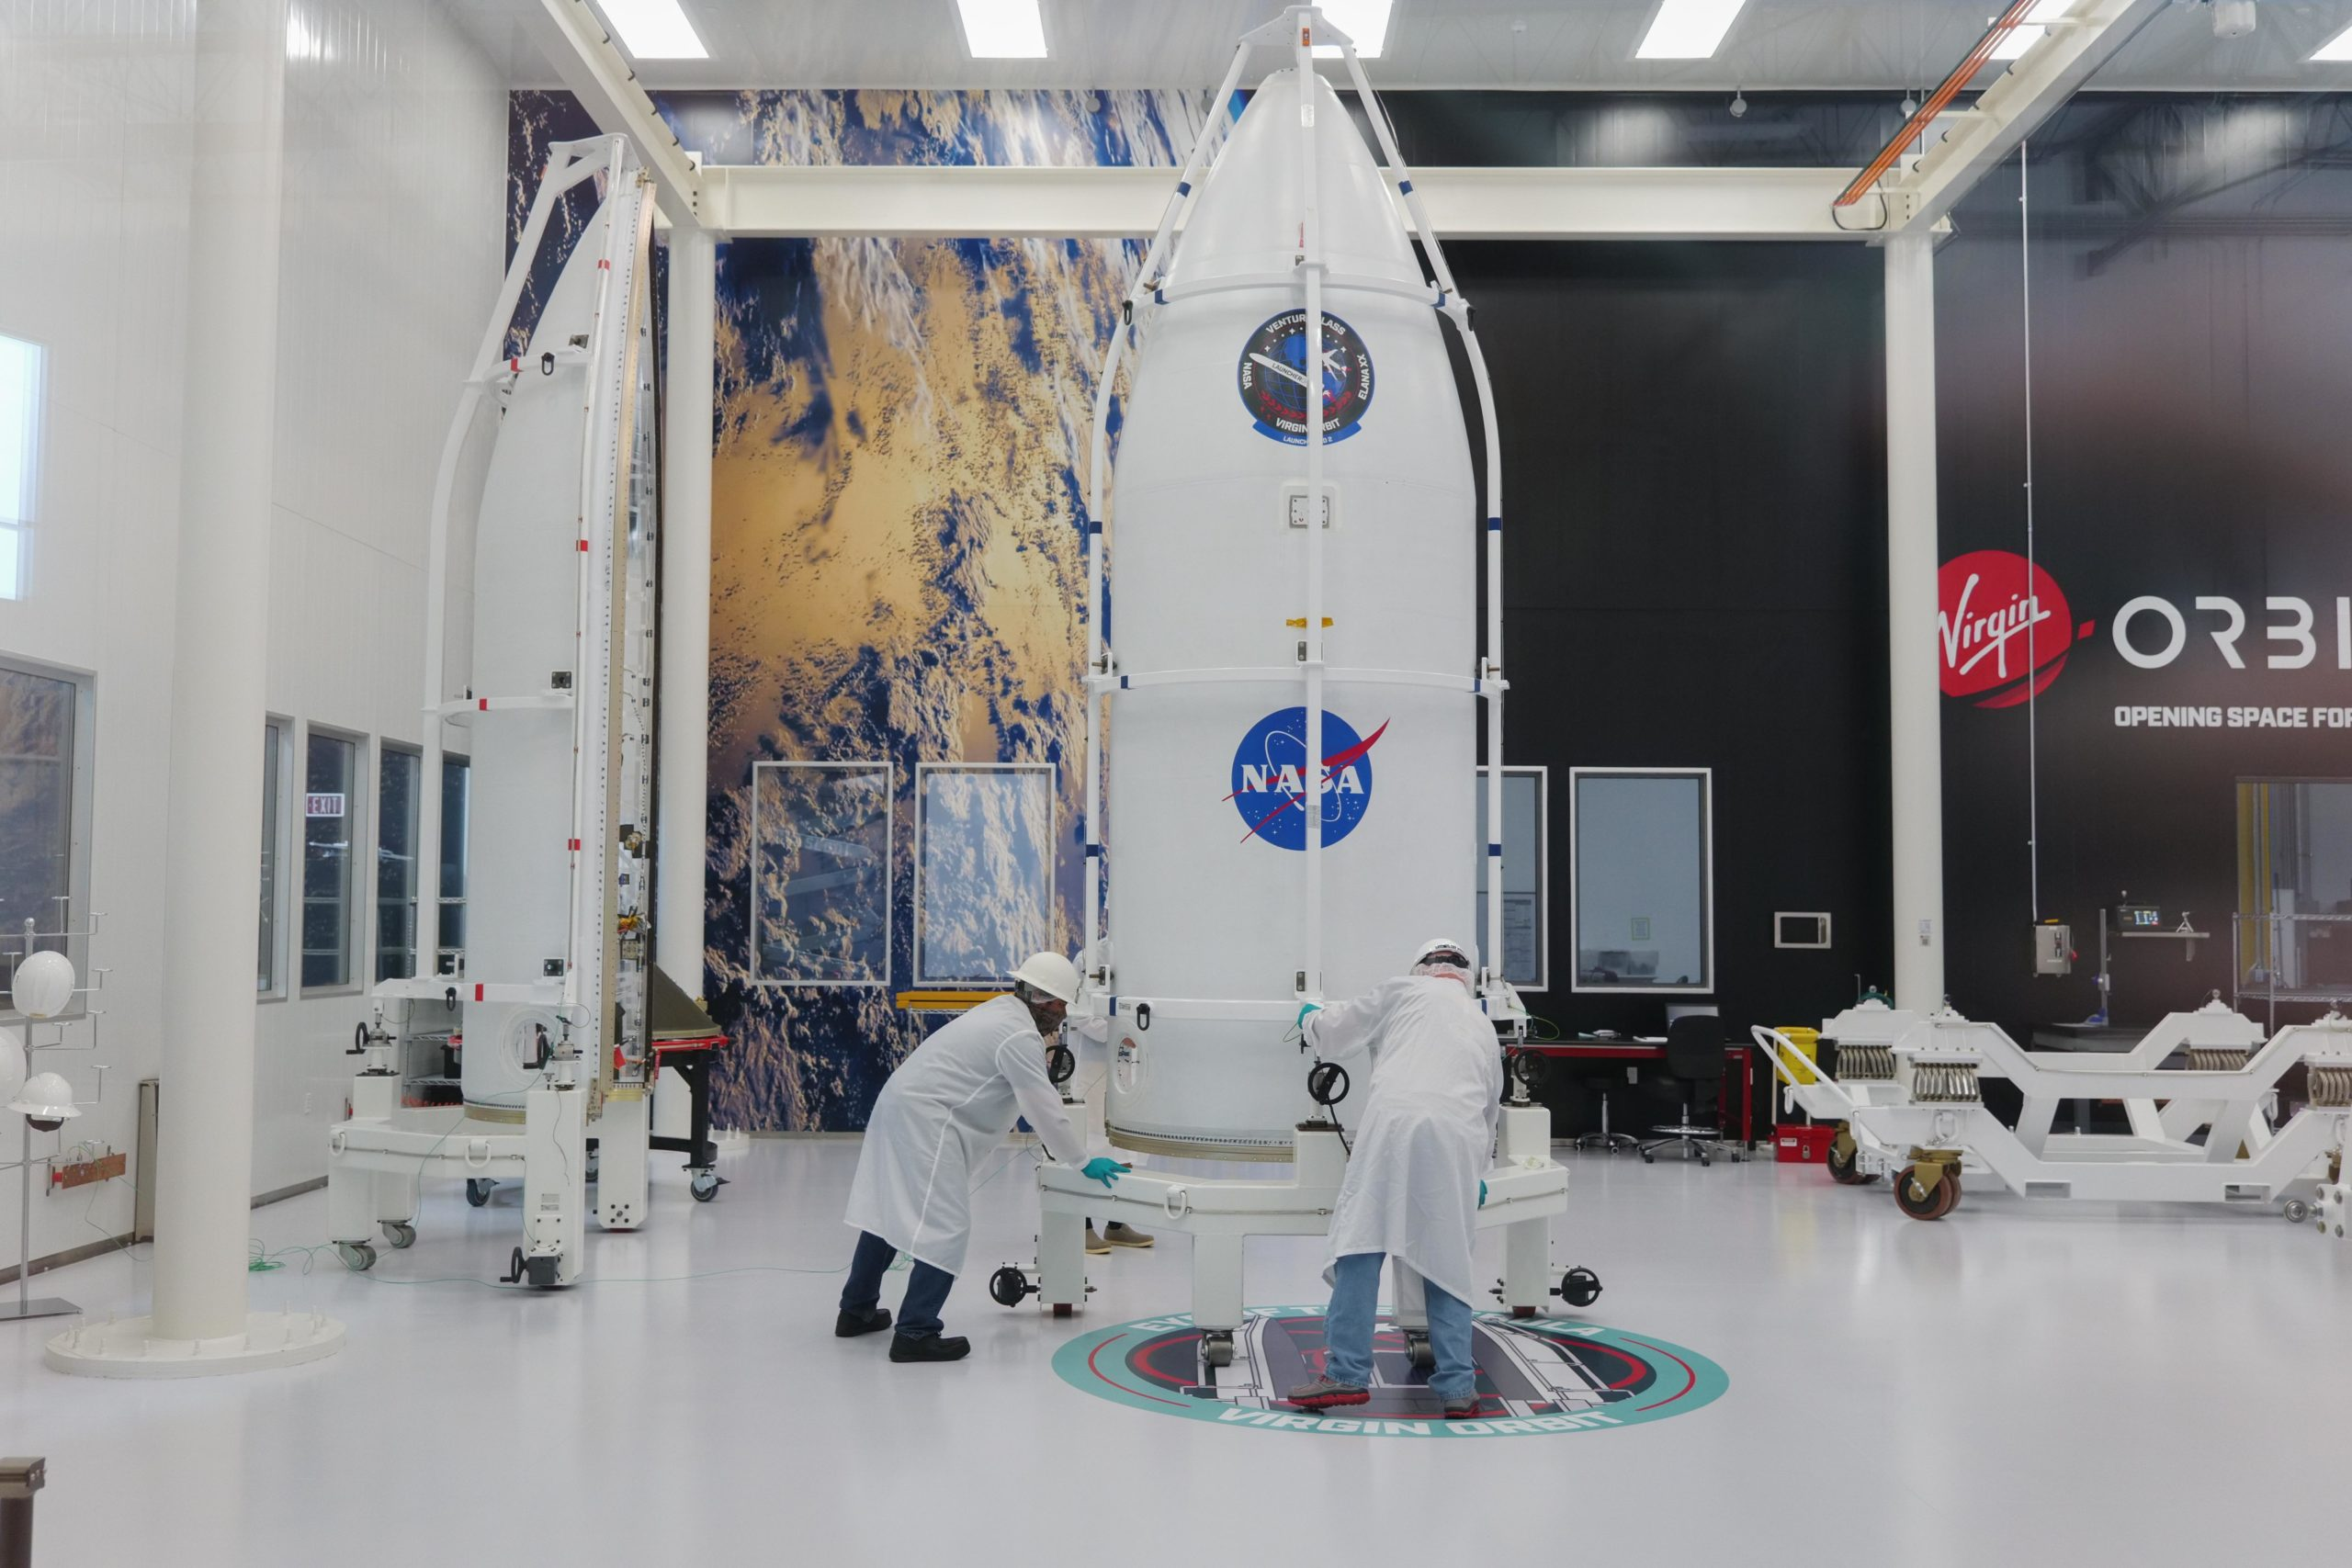 Virgin Orbit teammates complete a dry run of the payload encapsulation process last August inside its 'Nebula' payload processing facility ahead of the company's Launch Demo 2 mission. The payload has 10 small satellites, called CubeSats, including Cal Poly's 12th CubeSat, ExoCube 2. Virgin Orbit is gearing up for ELaNa 20, the Jan. 13 Launch Demo 2 flight from the Mojave Air and Space Port in California.